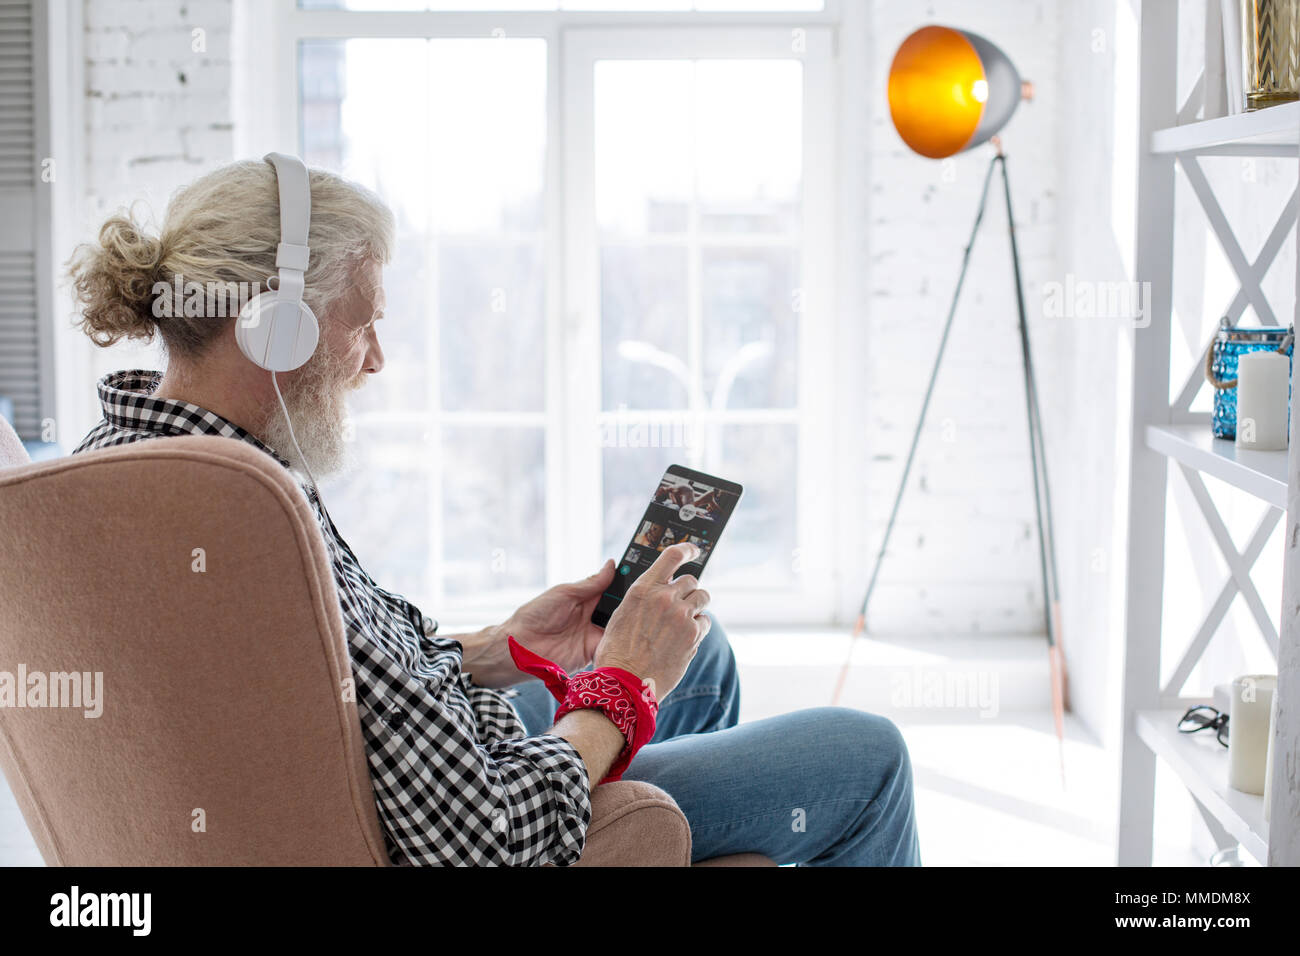 Charming senior man choosing track from playlist - Stock Image